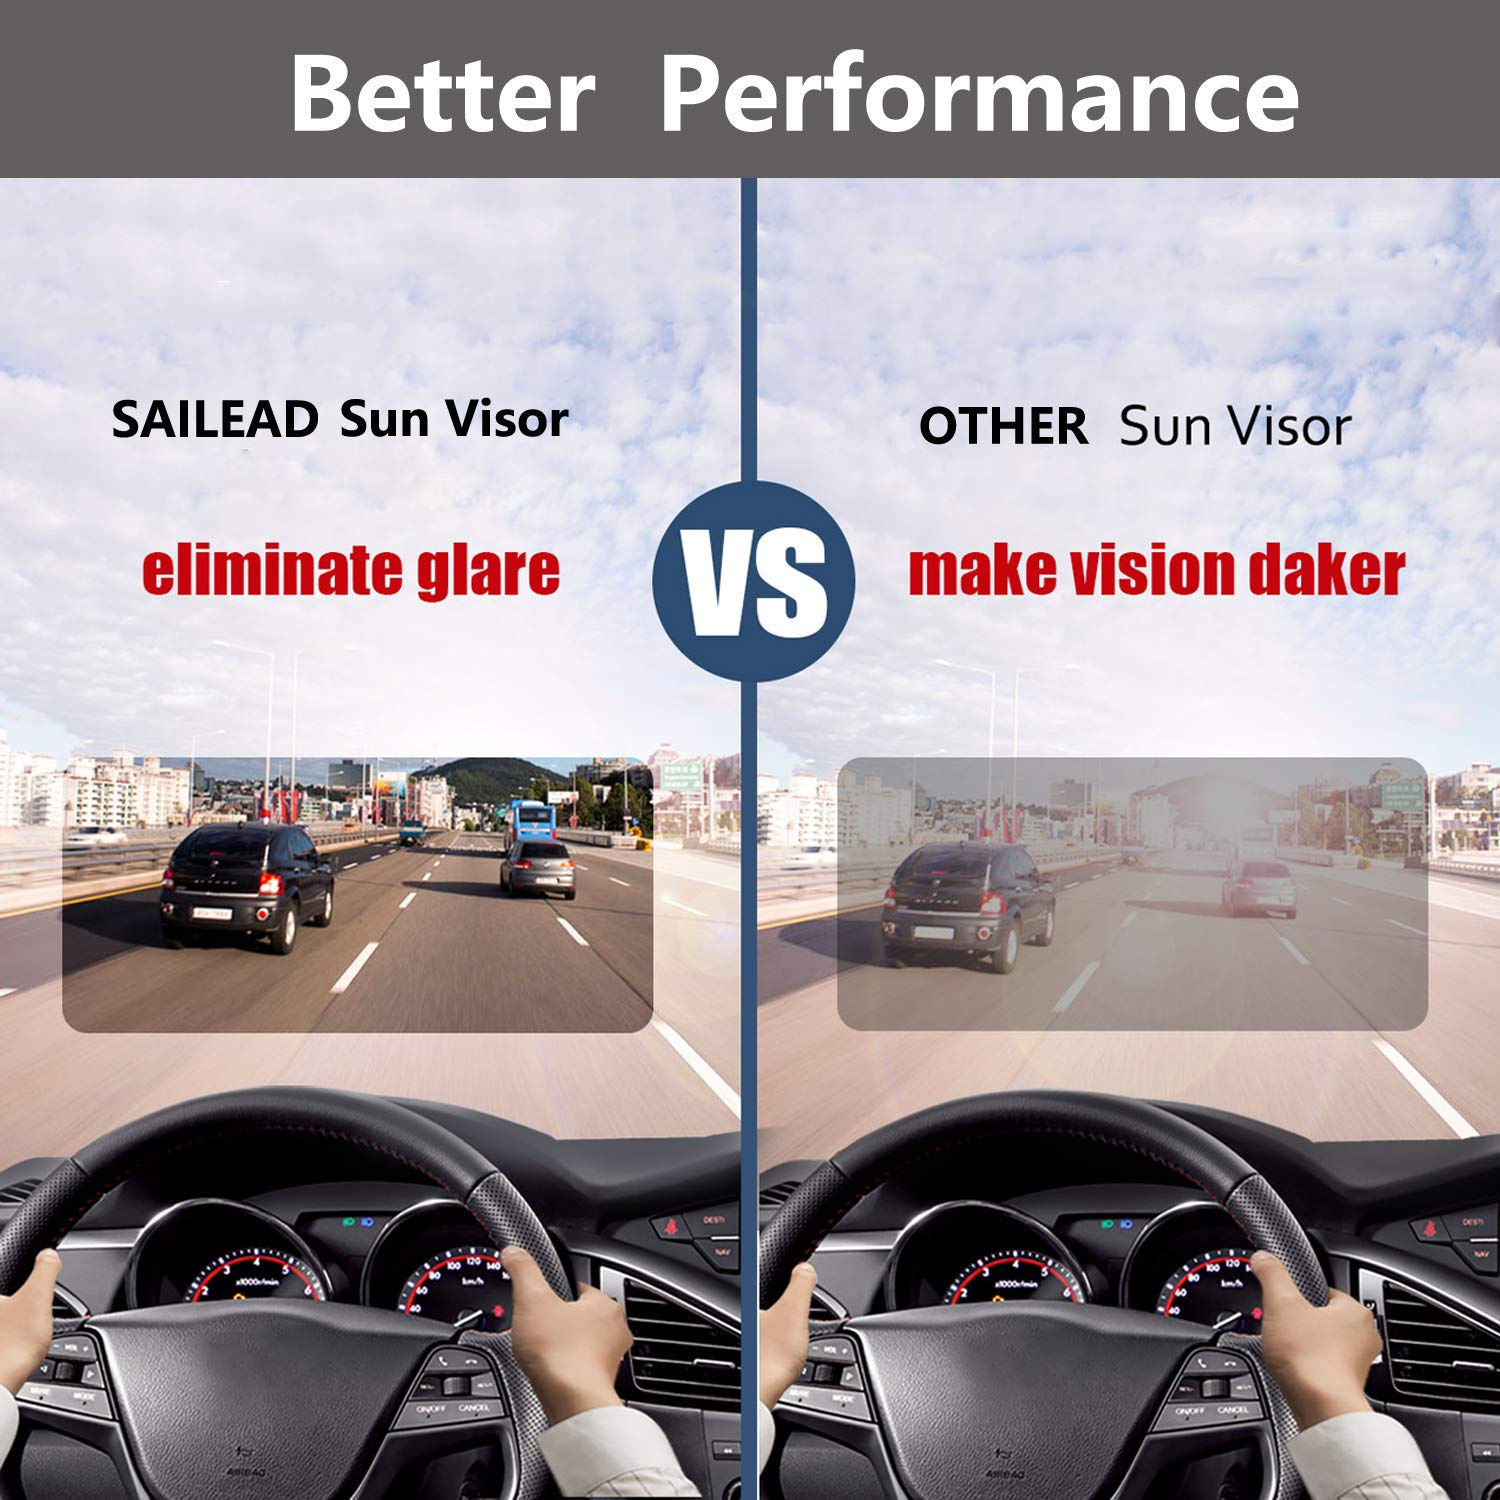 Universal Fits Cars SAILEAD Sun Visor Extender for Car Automatic Installation Day and Night Car Sun Visor Protects from Sun Glare Headlights SUVs and RVs